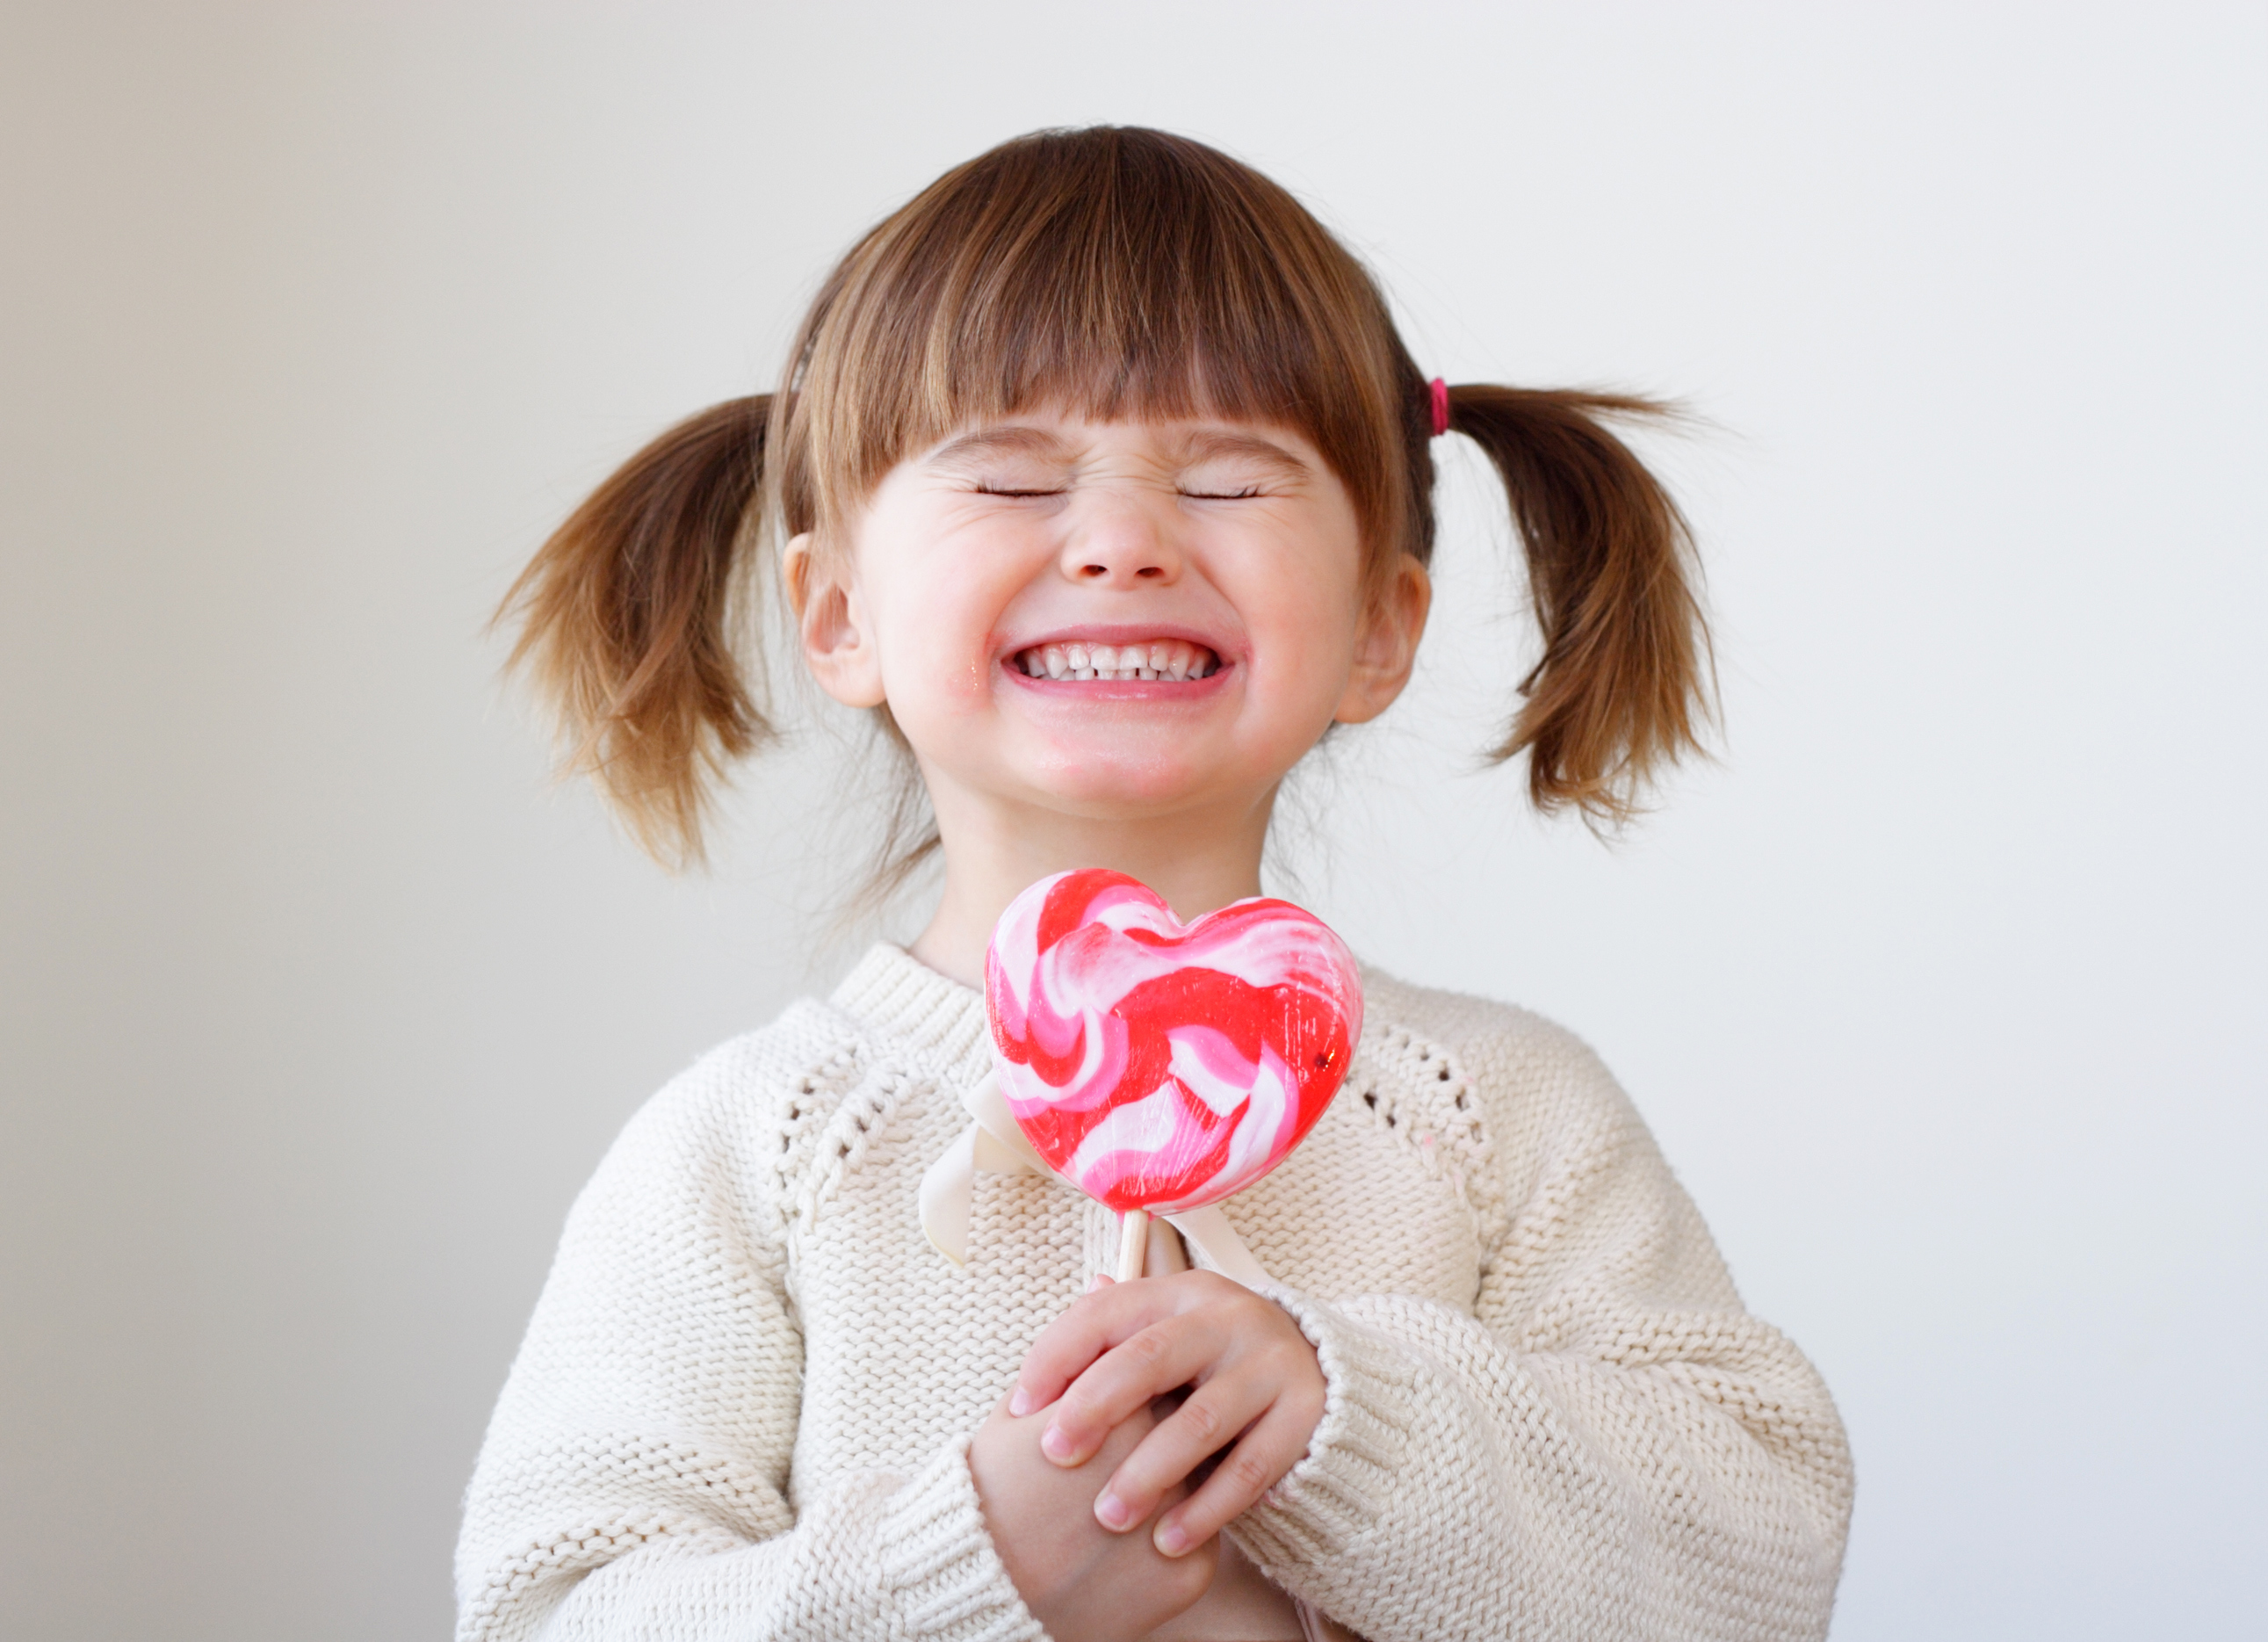 Giddy young girl with a heart-shaped lollipop